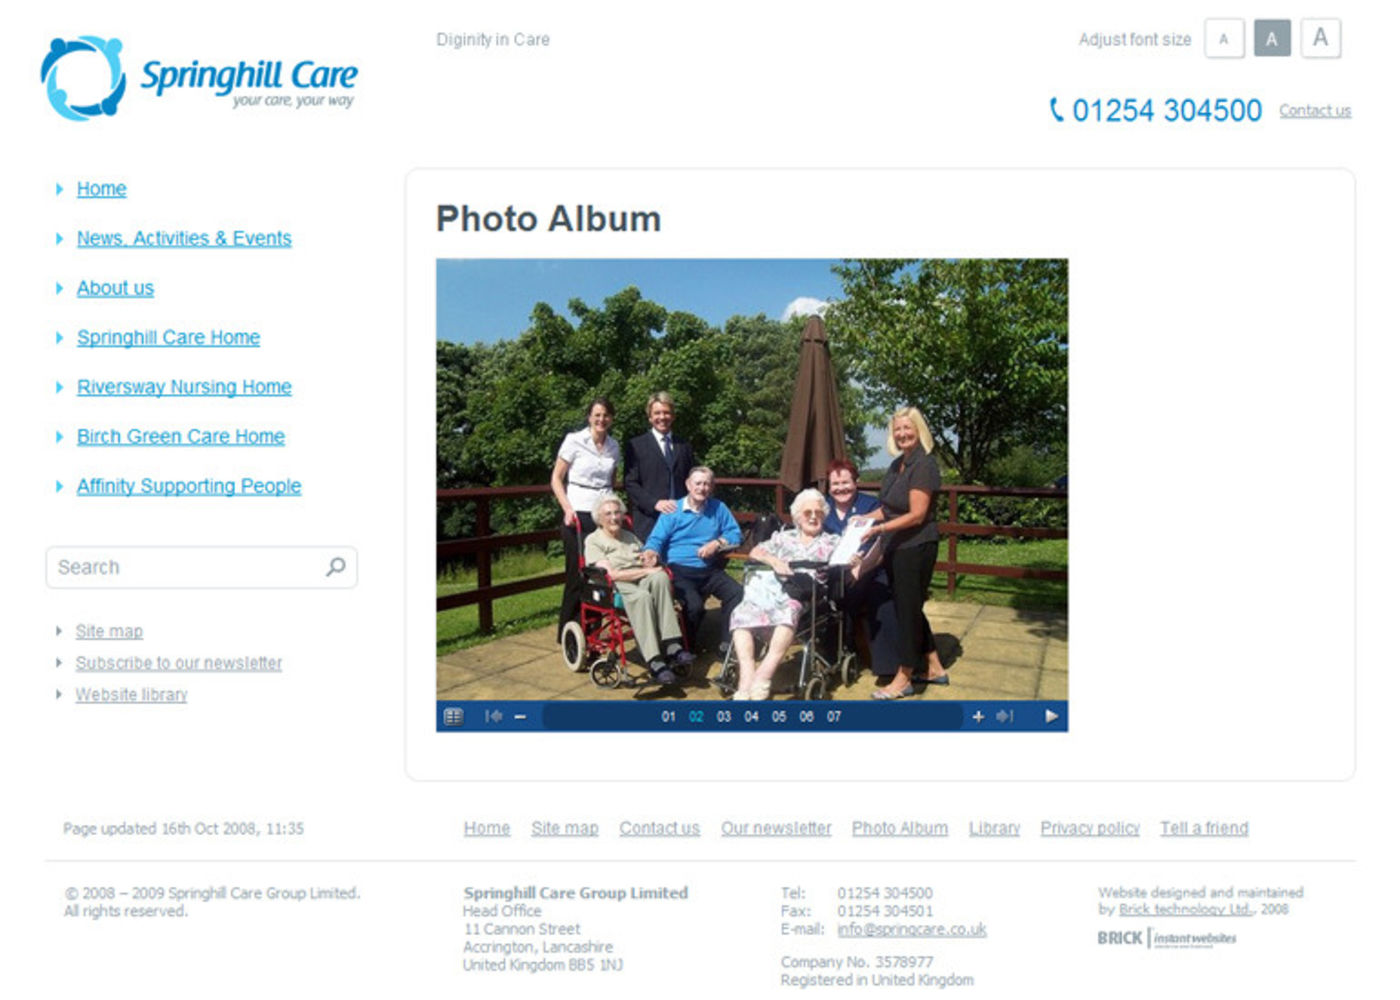 Springhill Care Group Limited Photo album